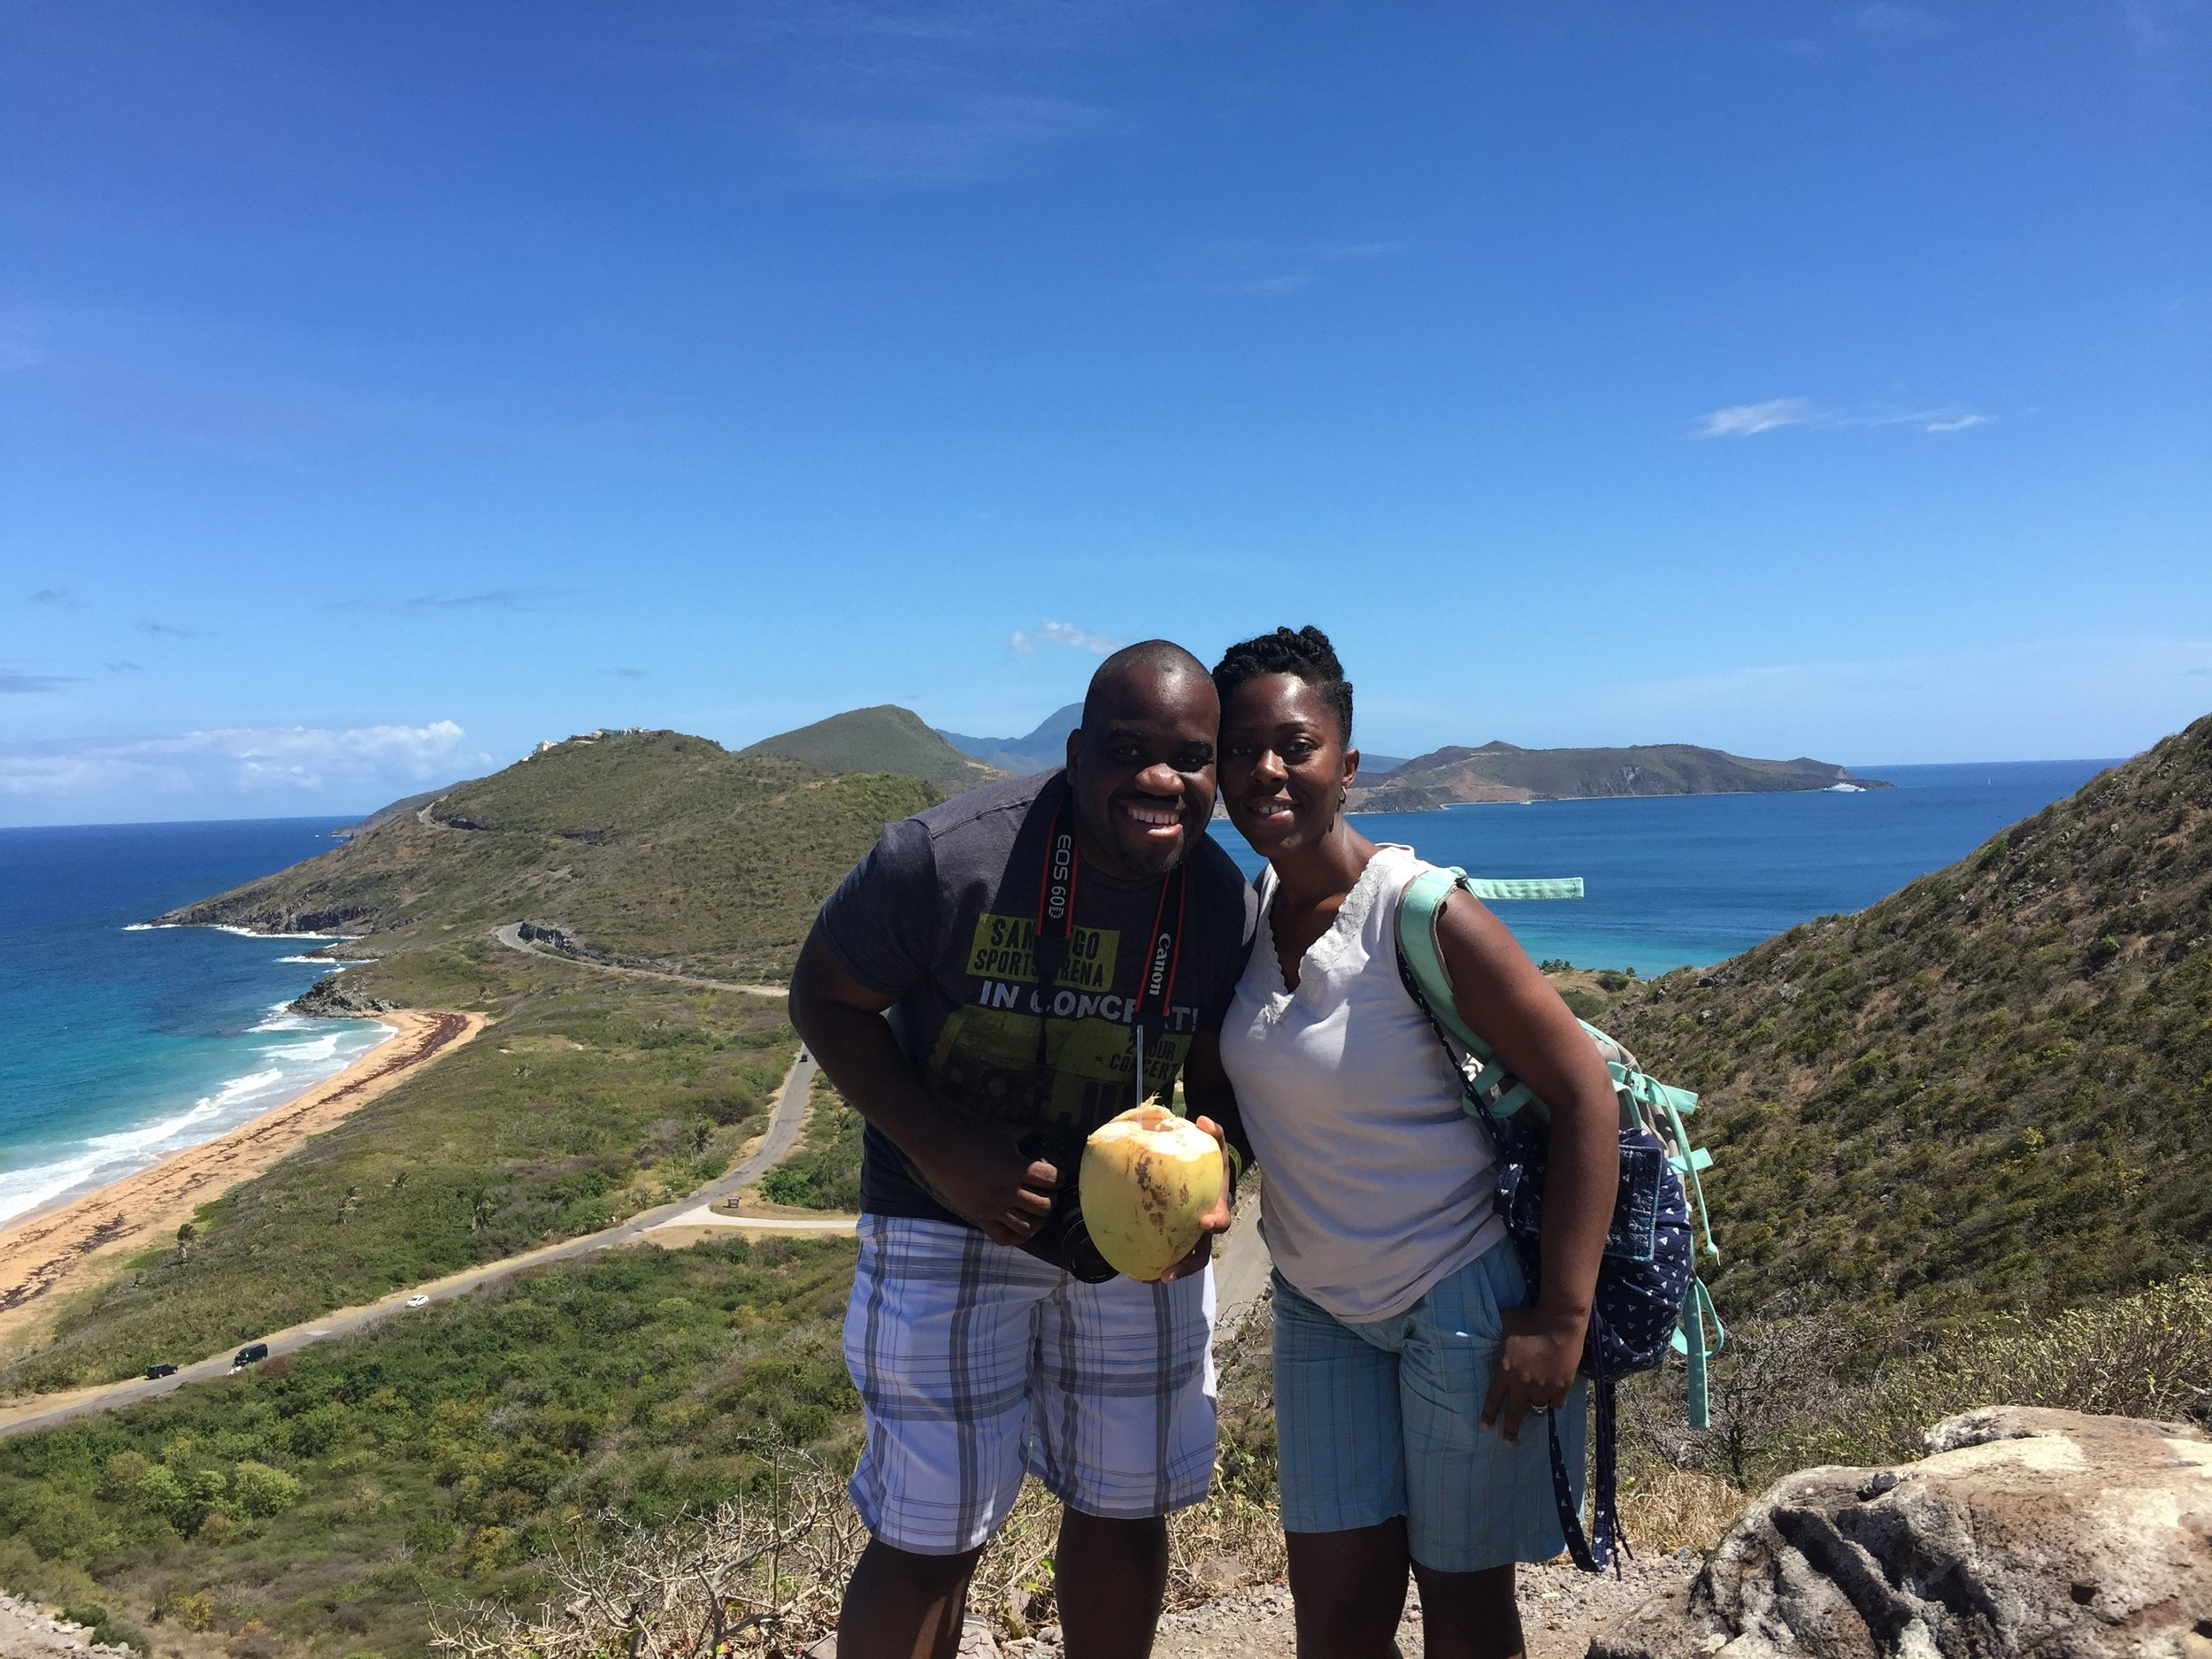 The Atlantic meets the Caribbean in St Kitts